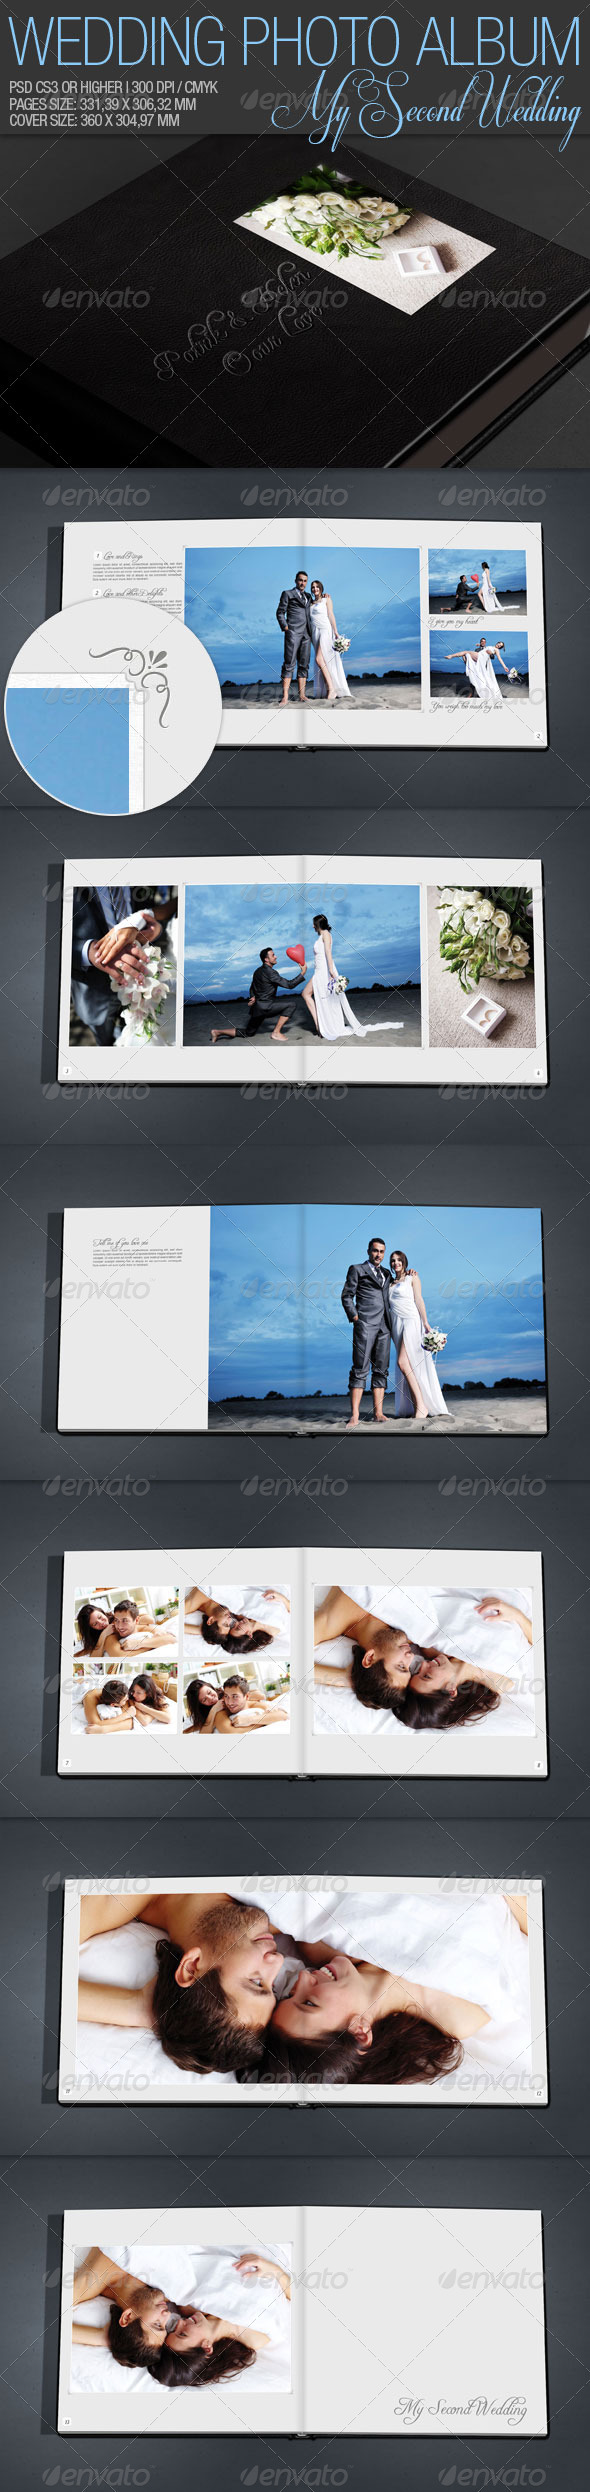 Wedding Photo Album 02 - Miscellaneous Print Templates